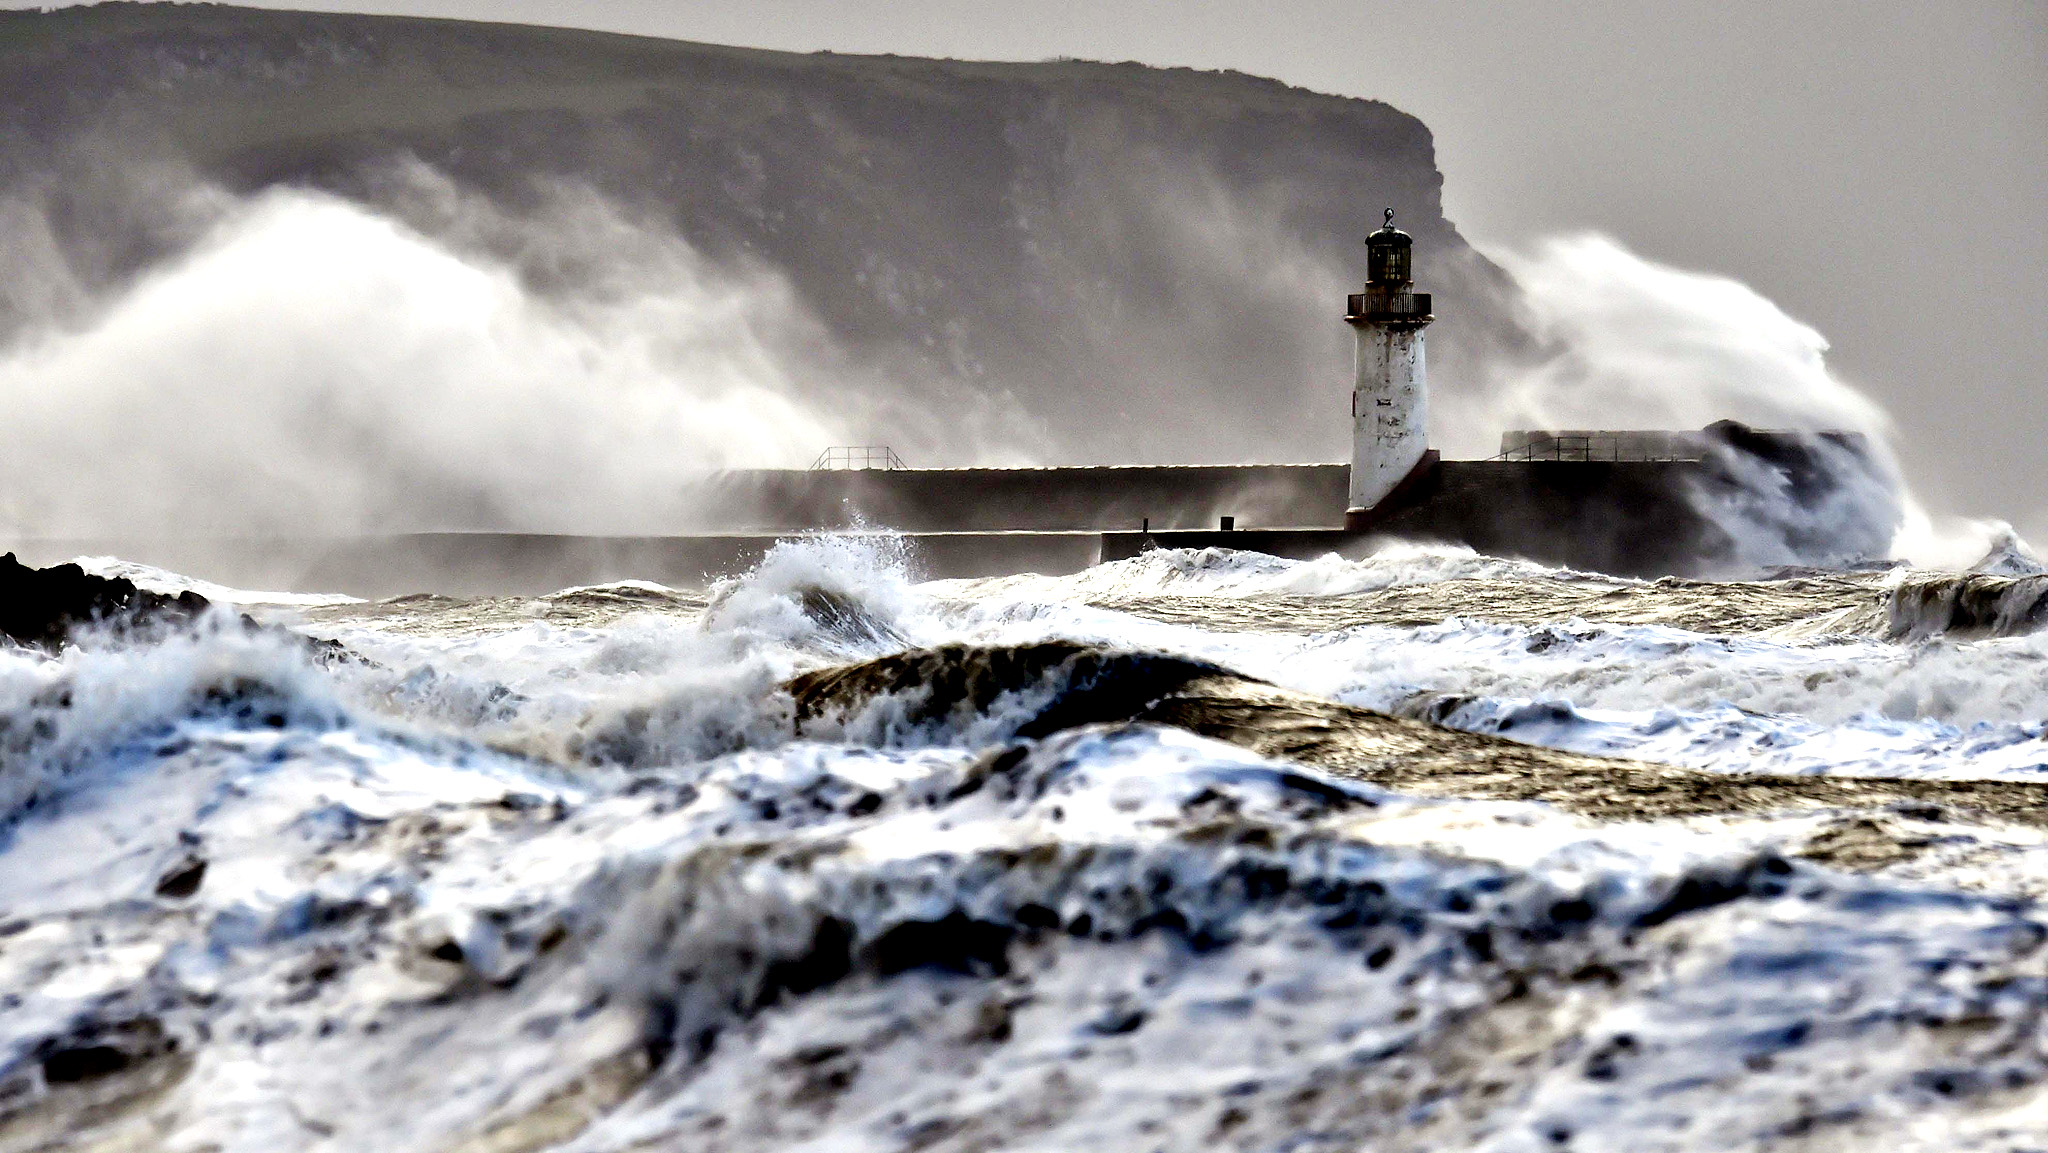 "Giant waves hit the lighthouse wall in Whitehaven, as the stormy weather is causing disruption across parts of the UK with power cuts, ferry and train cancellations and difficult driving conditions. PRESS ASSOCIATION Photo. Picture date: Wednesday December 10, 2014. The Met Office has issued an amber ''be prepared'' warning for the west coast of Scotland, the Highlands and Islands, Orkney, Shetland and Northern Ireland as a so-called ""weather bomb"" batters the country"